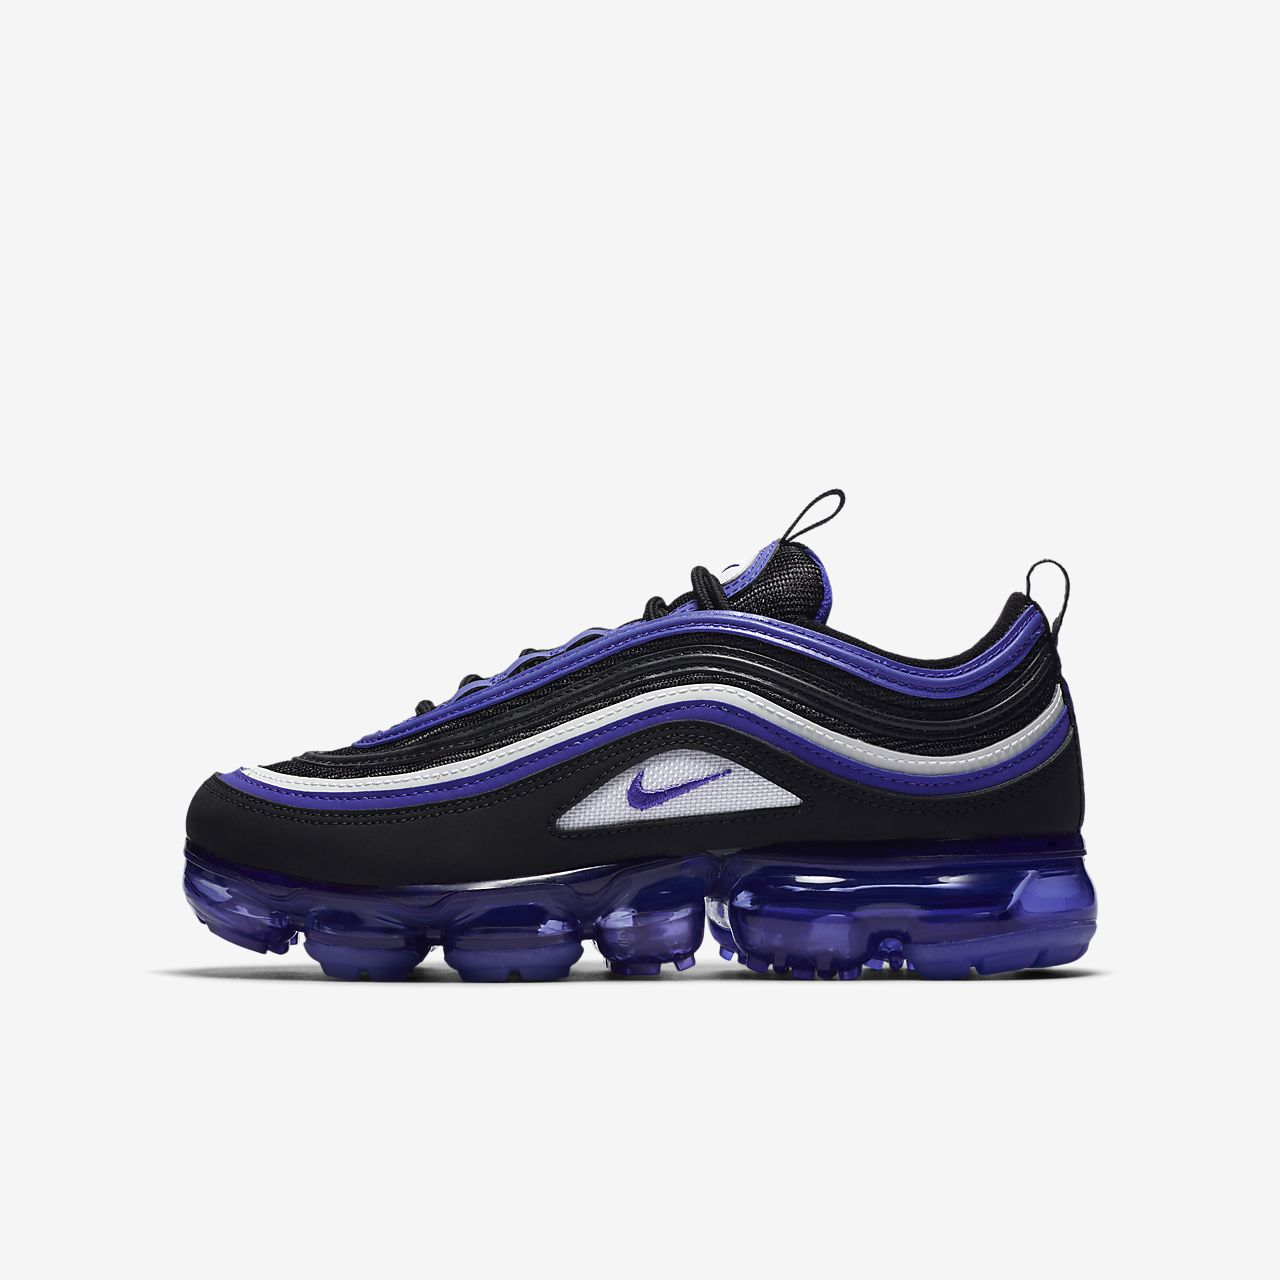 8878c192ecae2a Nike Air VaporMax 97 Big Kids  Shoe. Nike.com